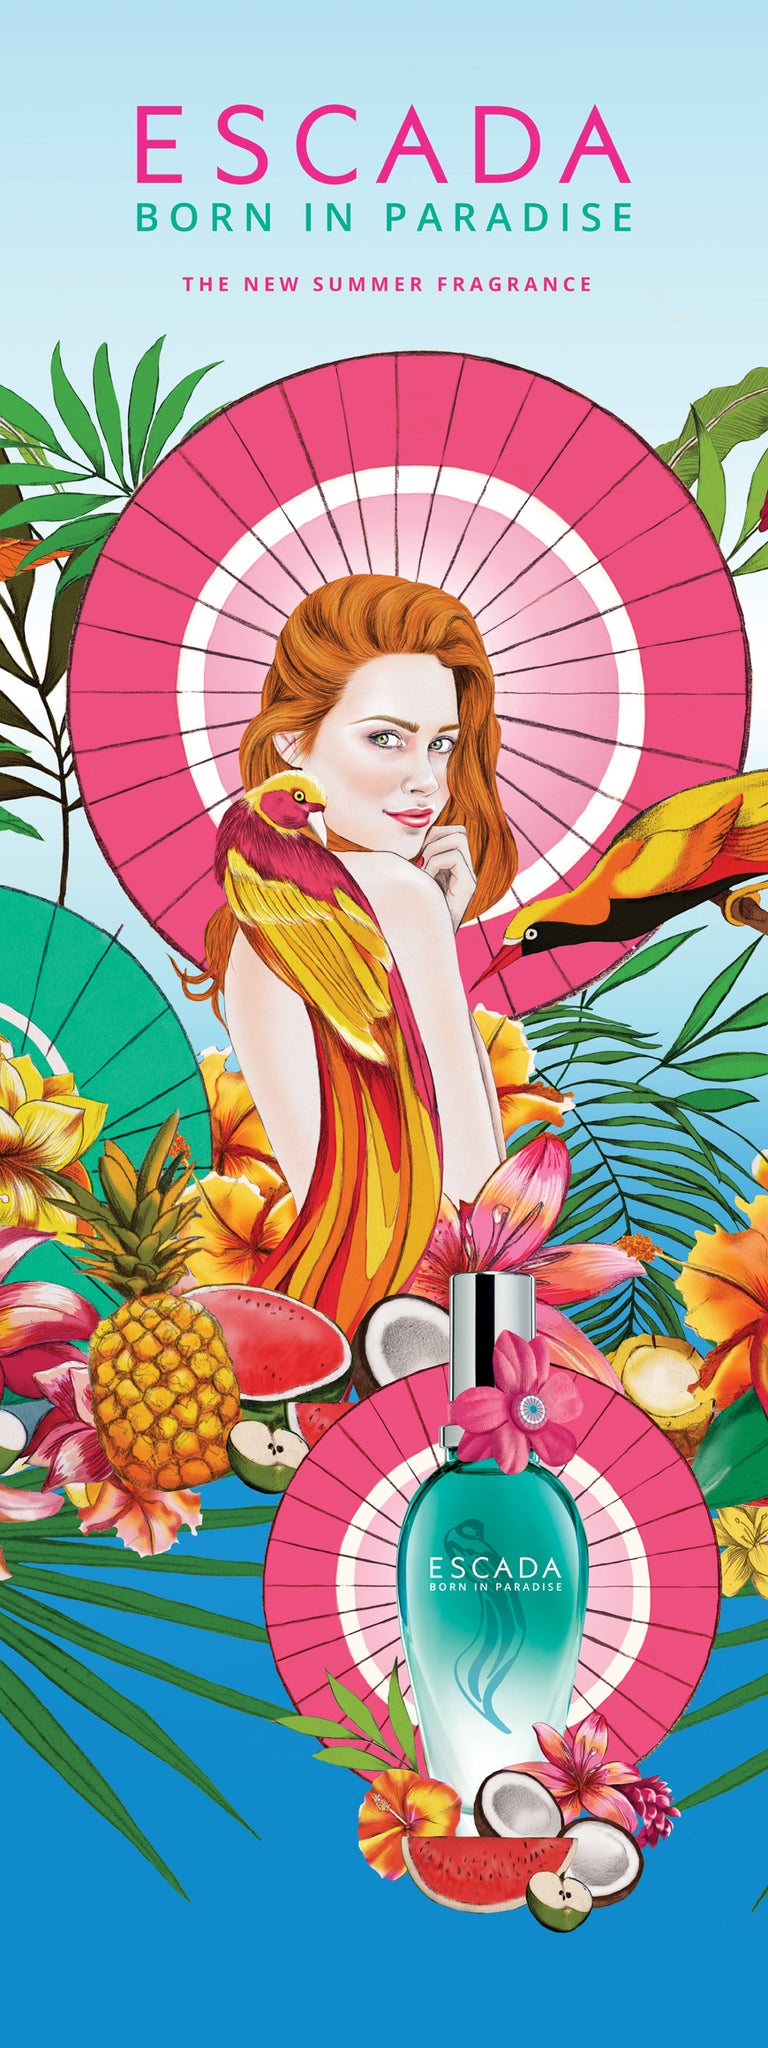 Melbourne beauty illustrator Kelly Thompson for Escada Paris Born in Paradise packaging